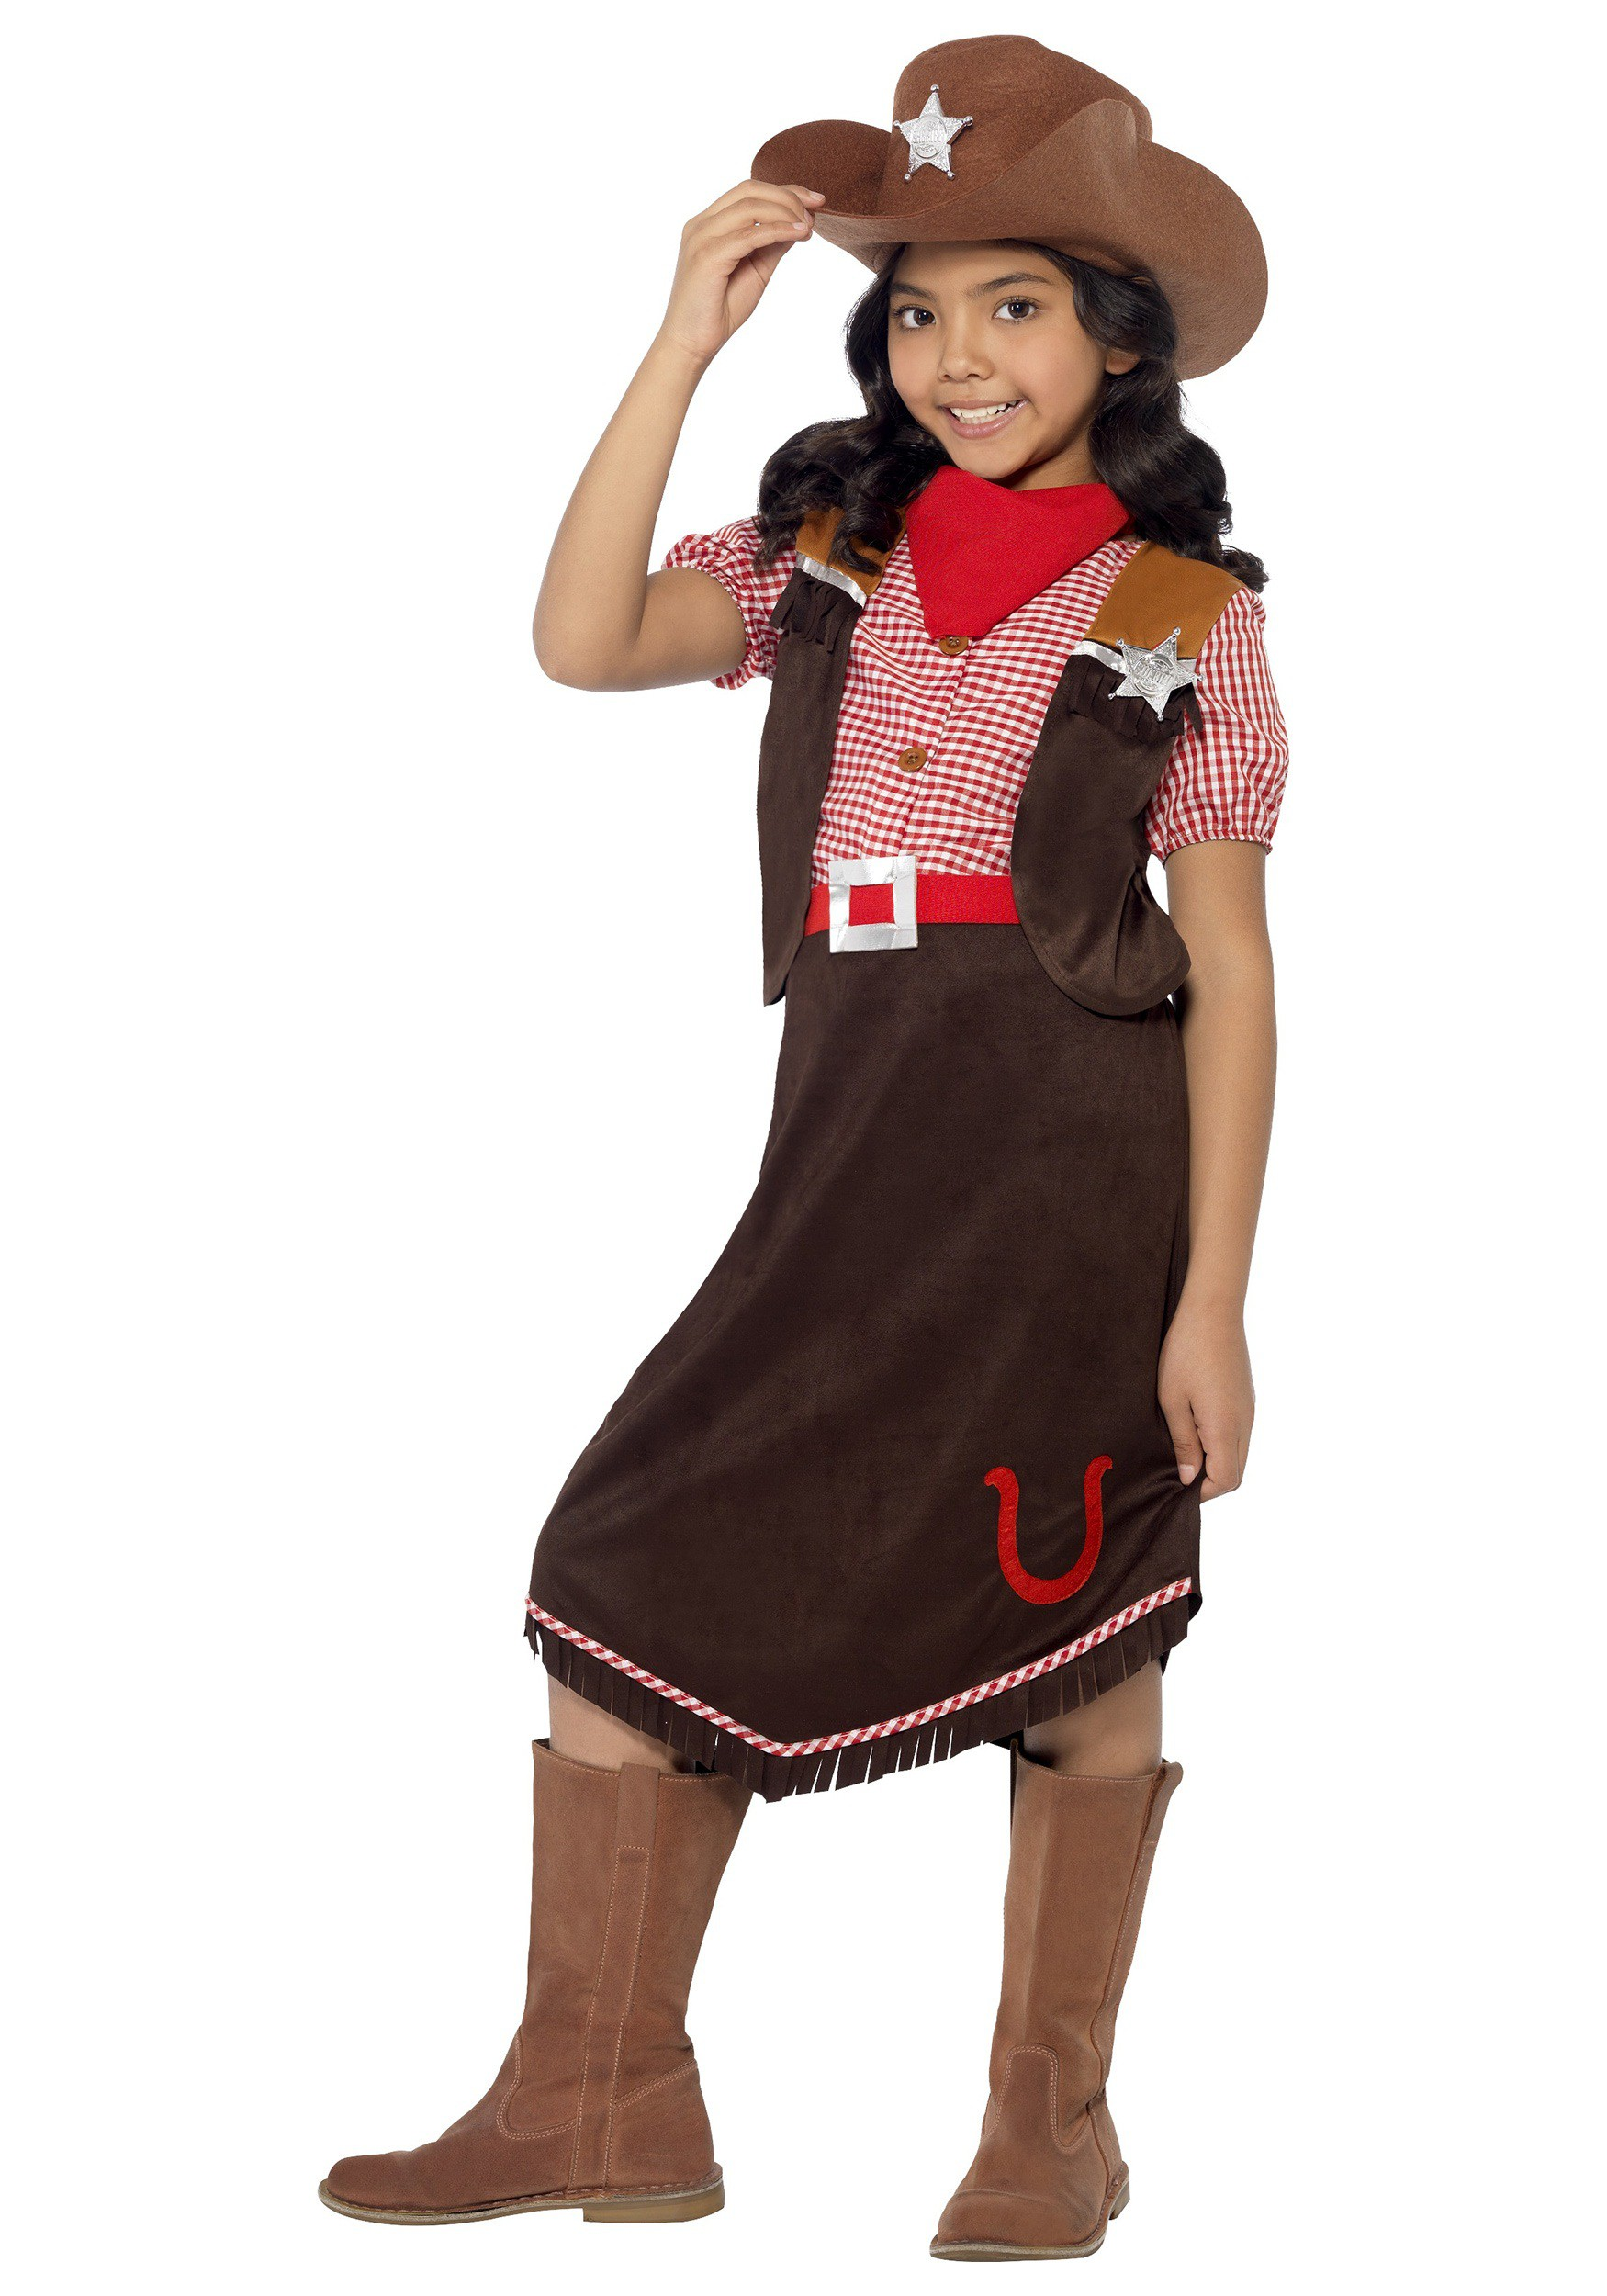 Child's Deluxe Cowgirl Costume